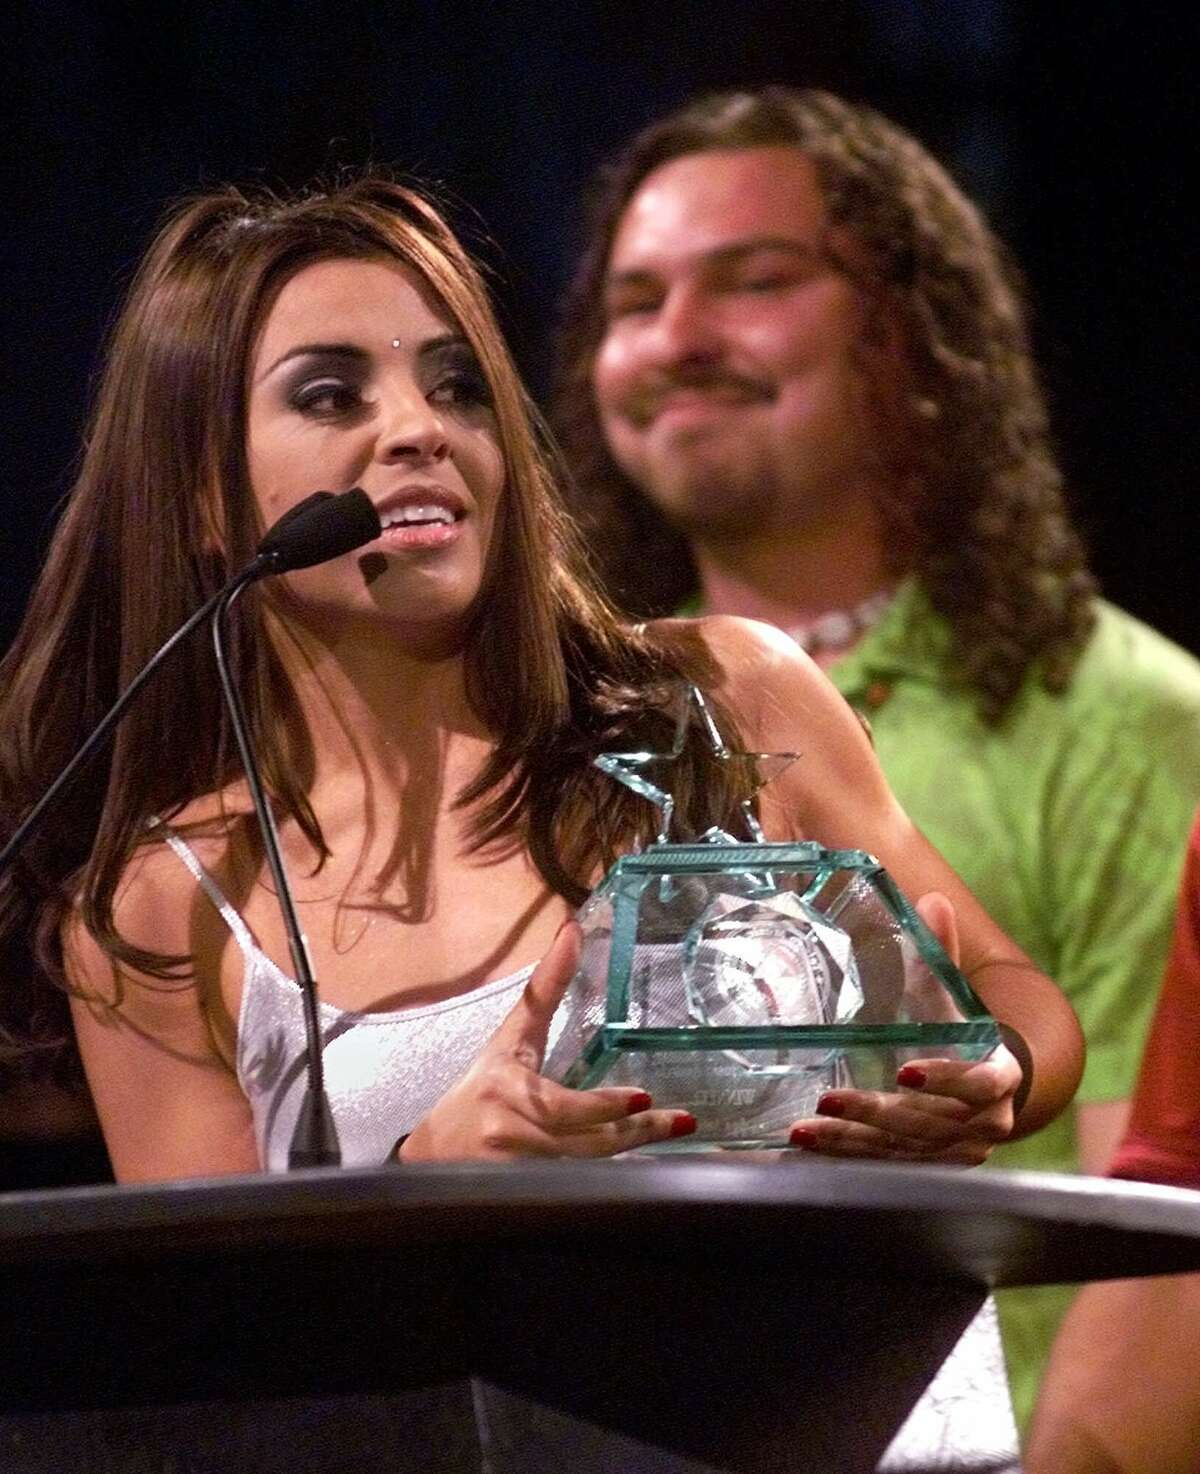 Elida Reyna accepts a Tejano Music Award at the Alamodome in San Antonio on Saturday, March 11, 2000, for her band Avante, which won in the category of Mexican Regional Song with 'Duele.' Percussionist Epi Martinez looks at the award from behind. (AP Photo/Express-News, Tom Reel)